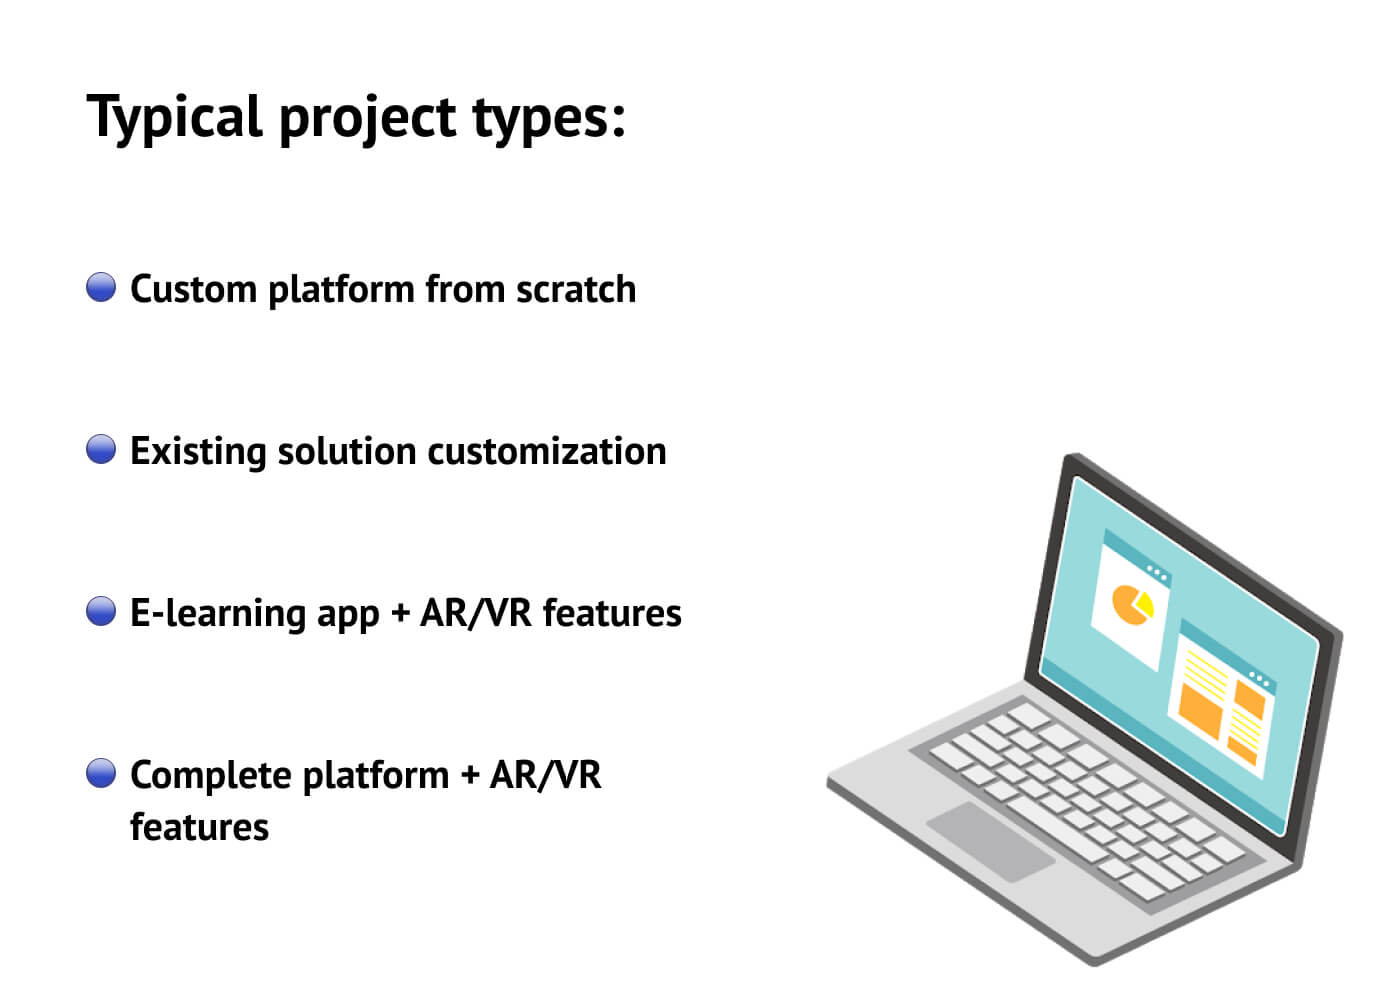 Typical project types that development companies offer